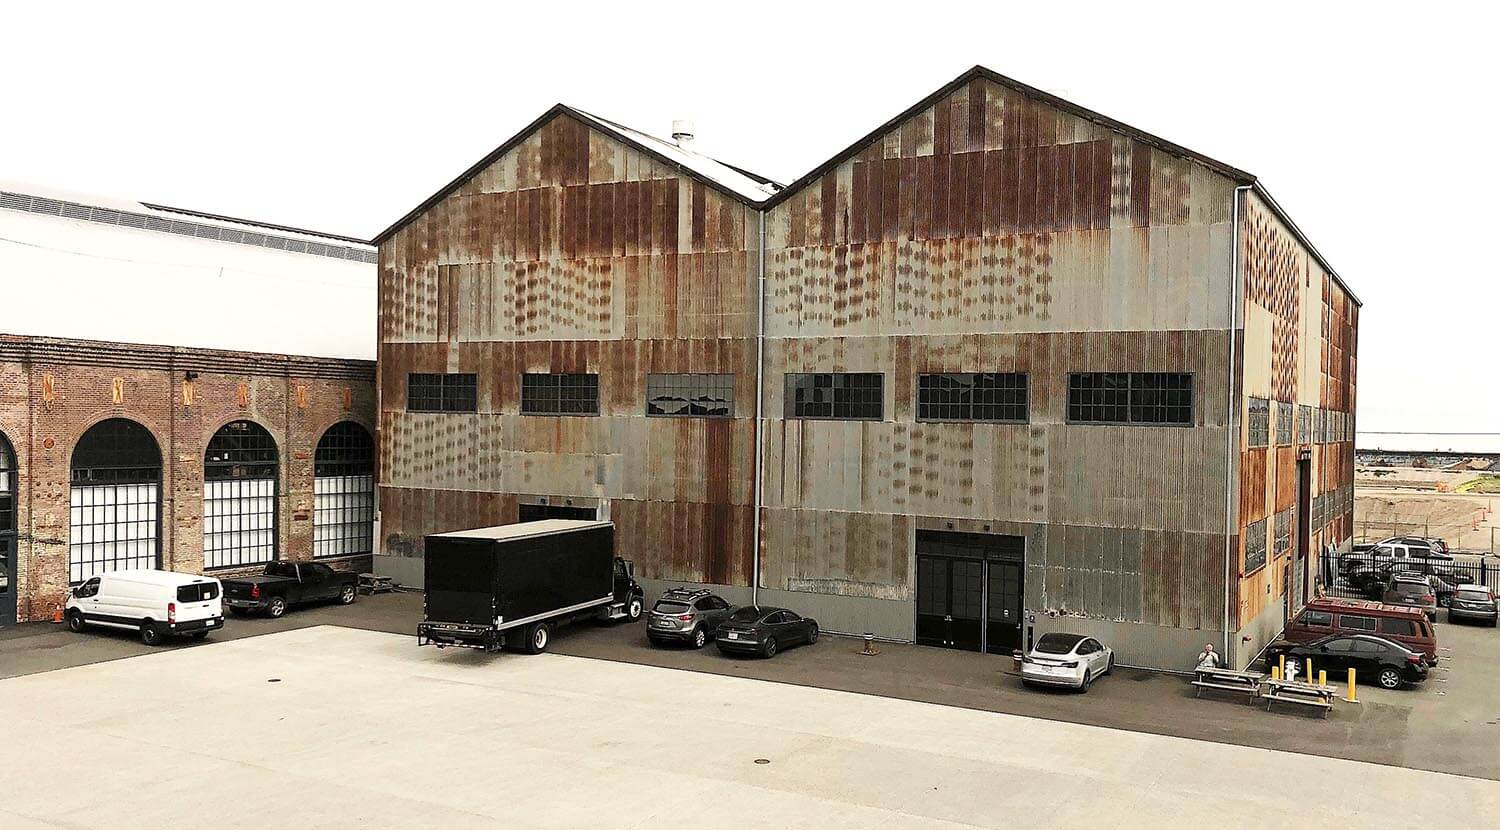 Exterior view of rusted metal building at Pier 70, Building 14 in San Francisco